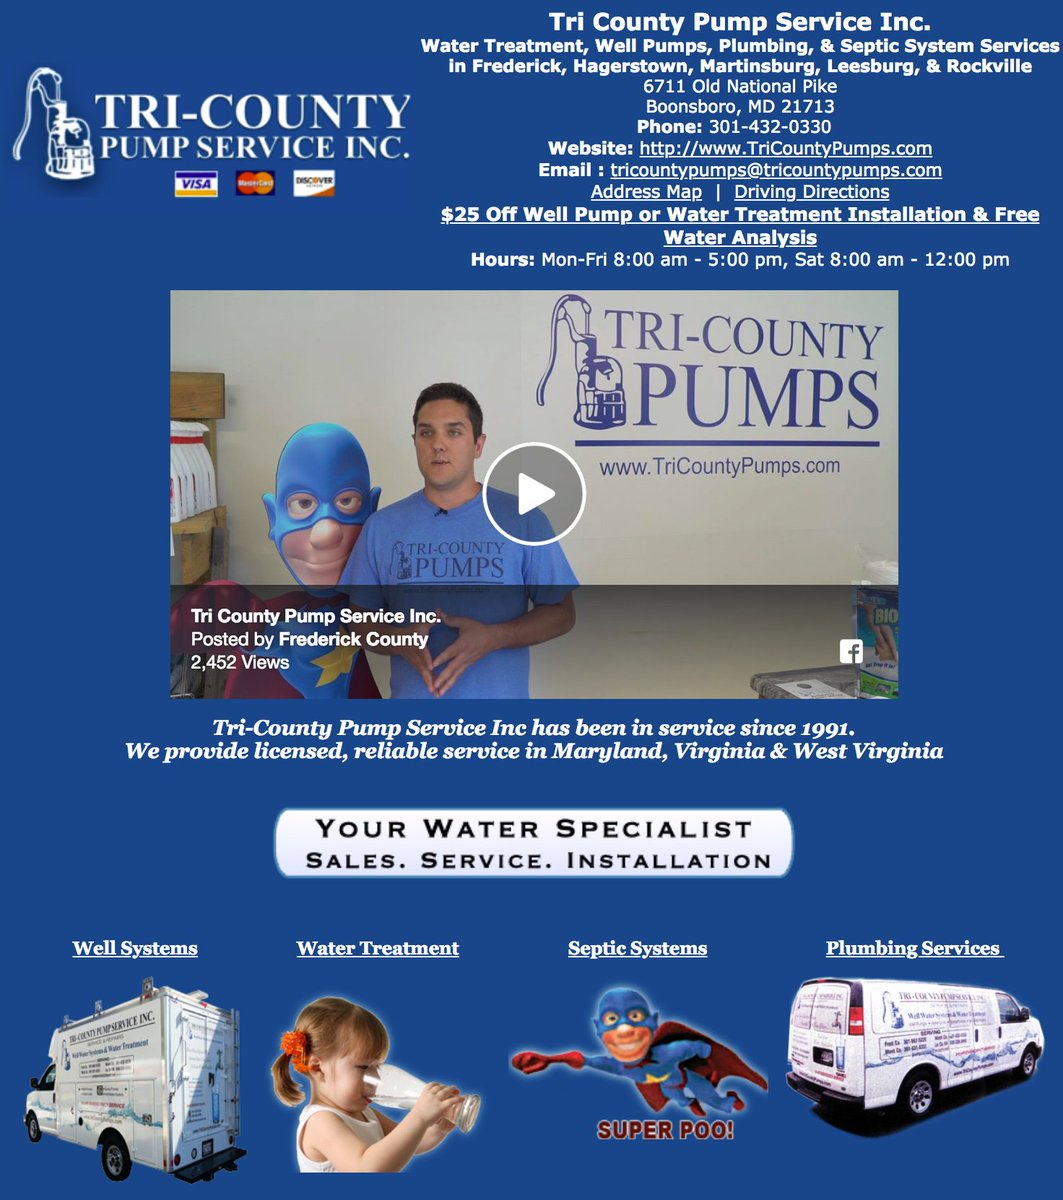 Well Pumps Plumbing Septic System Services In Frederick Hagerstown Martinsburg Leesburg Rockville 6711 Old National Pike Boonsboro